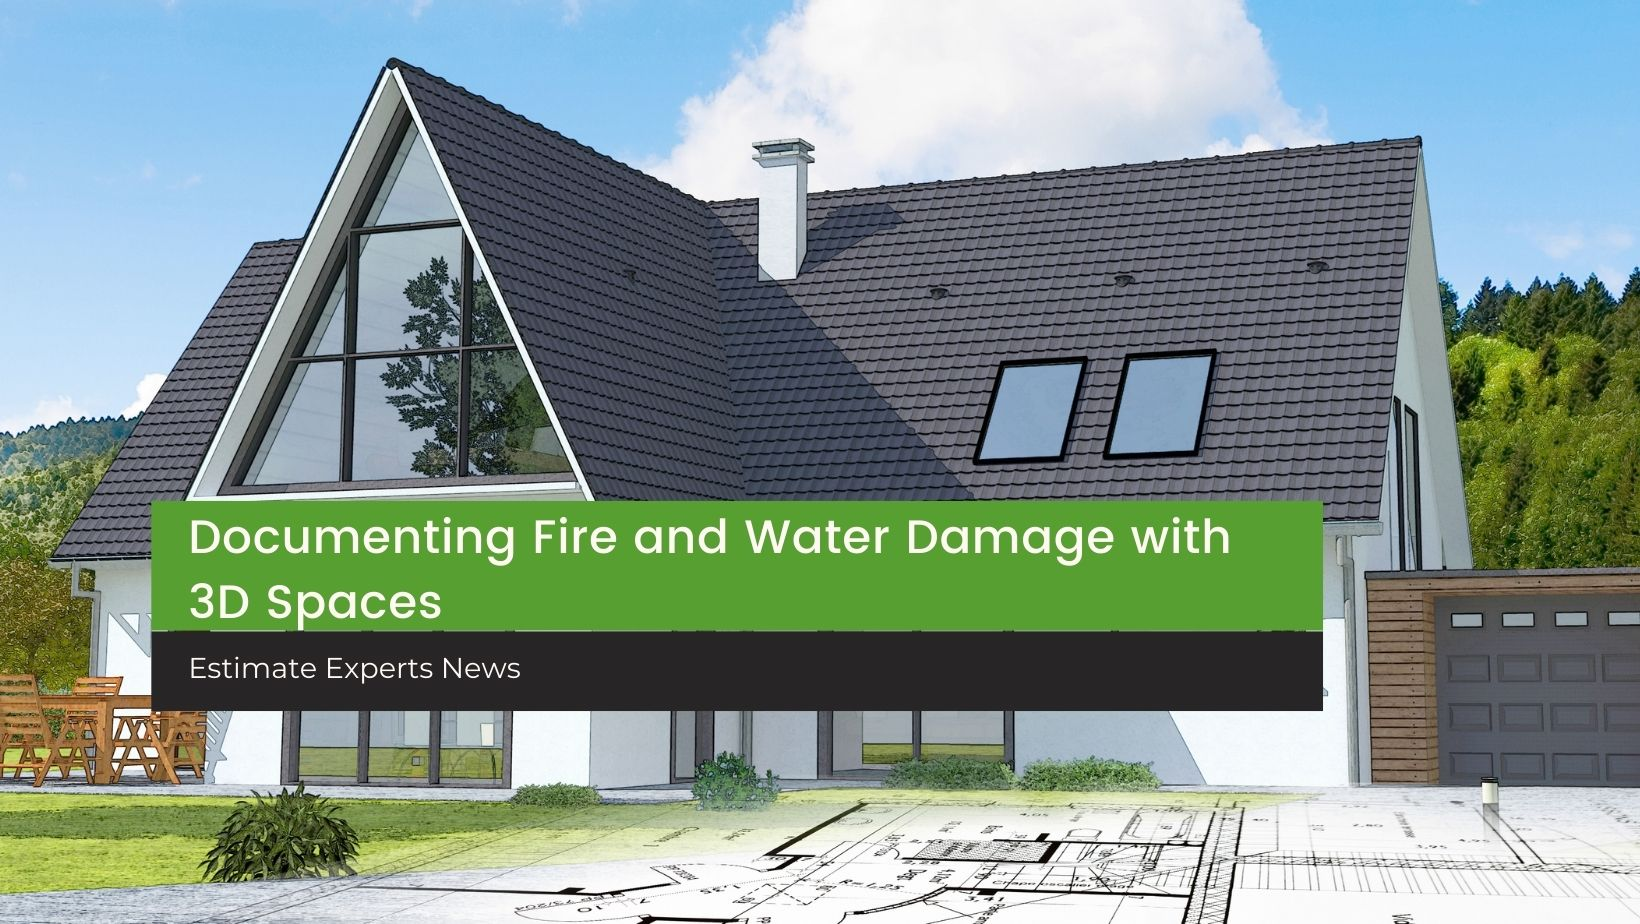 Documenting Fire and Water damage with 3D Spaces!